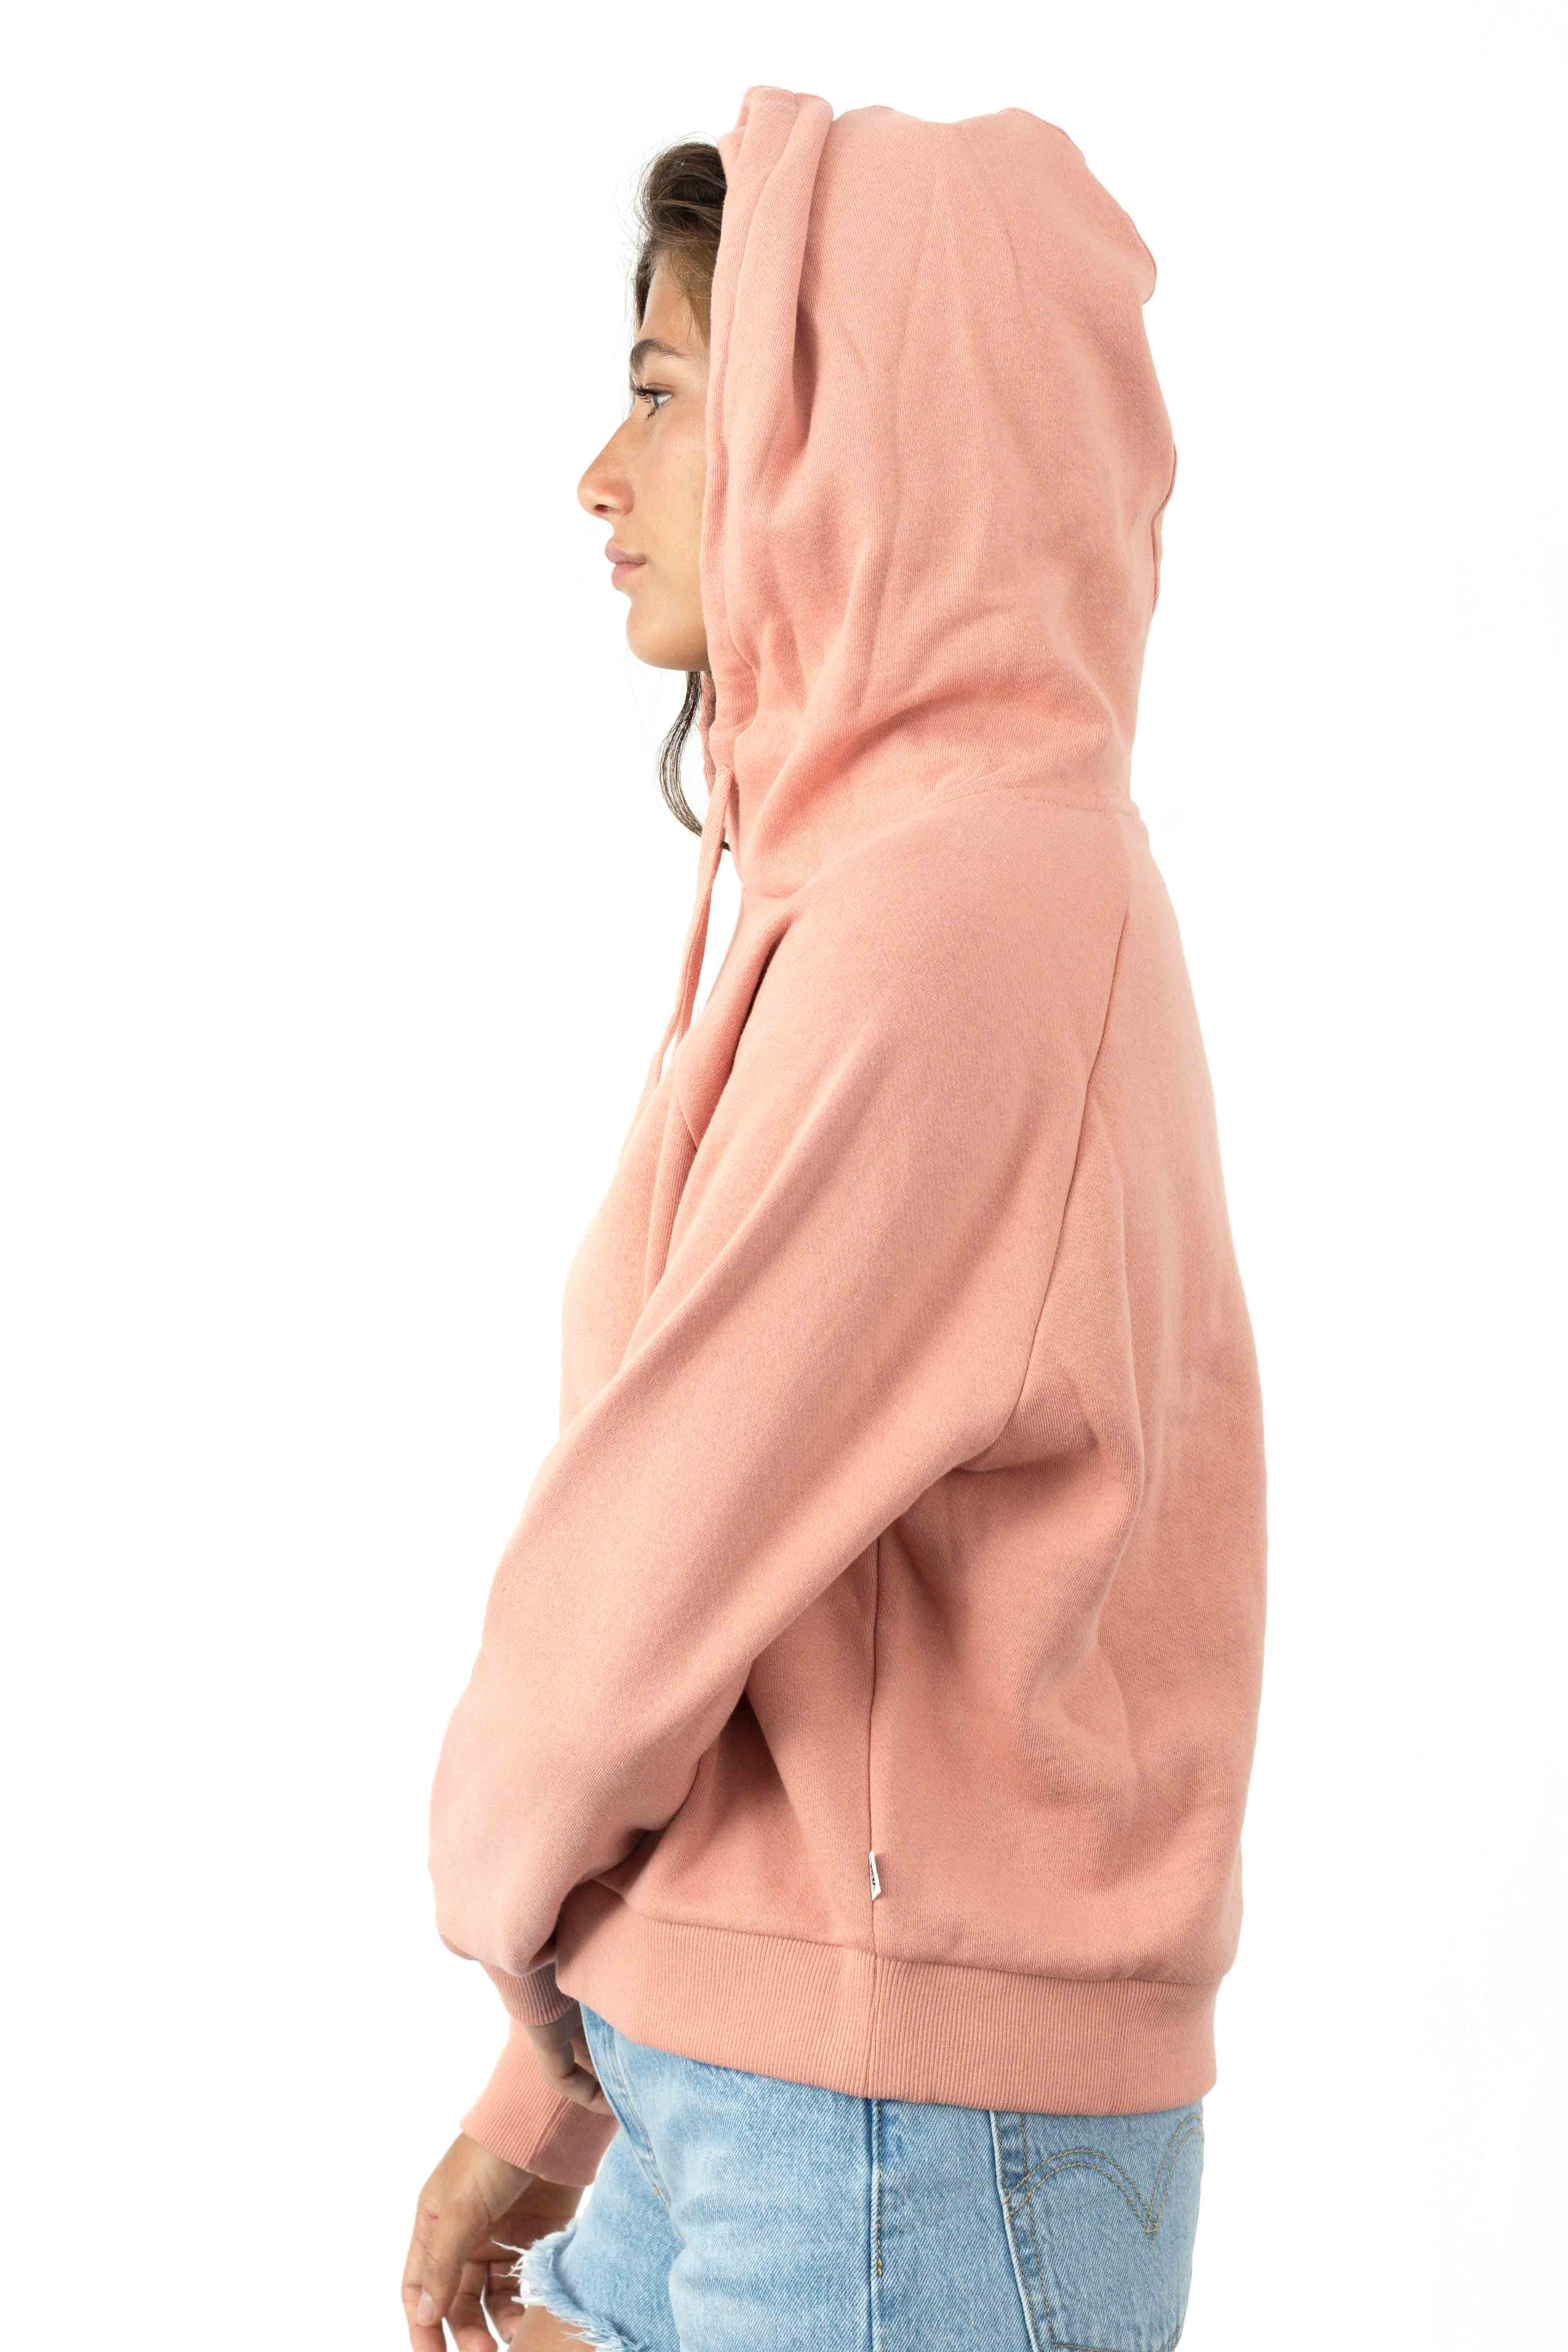 Flying V Boxy Pullover Hoodie - Rose Dawn 2